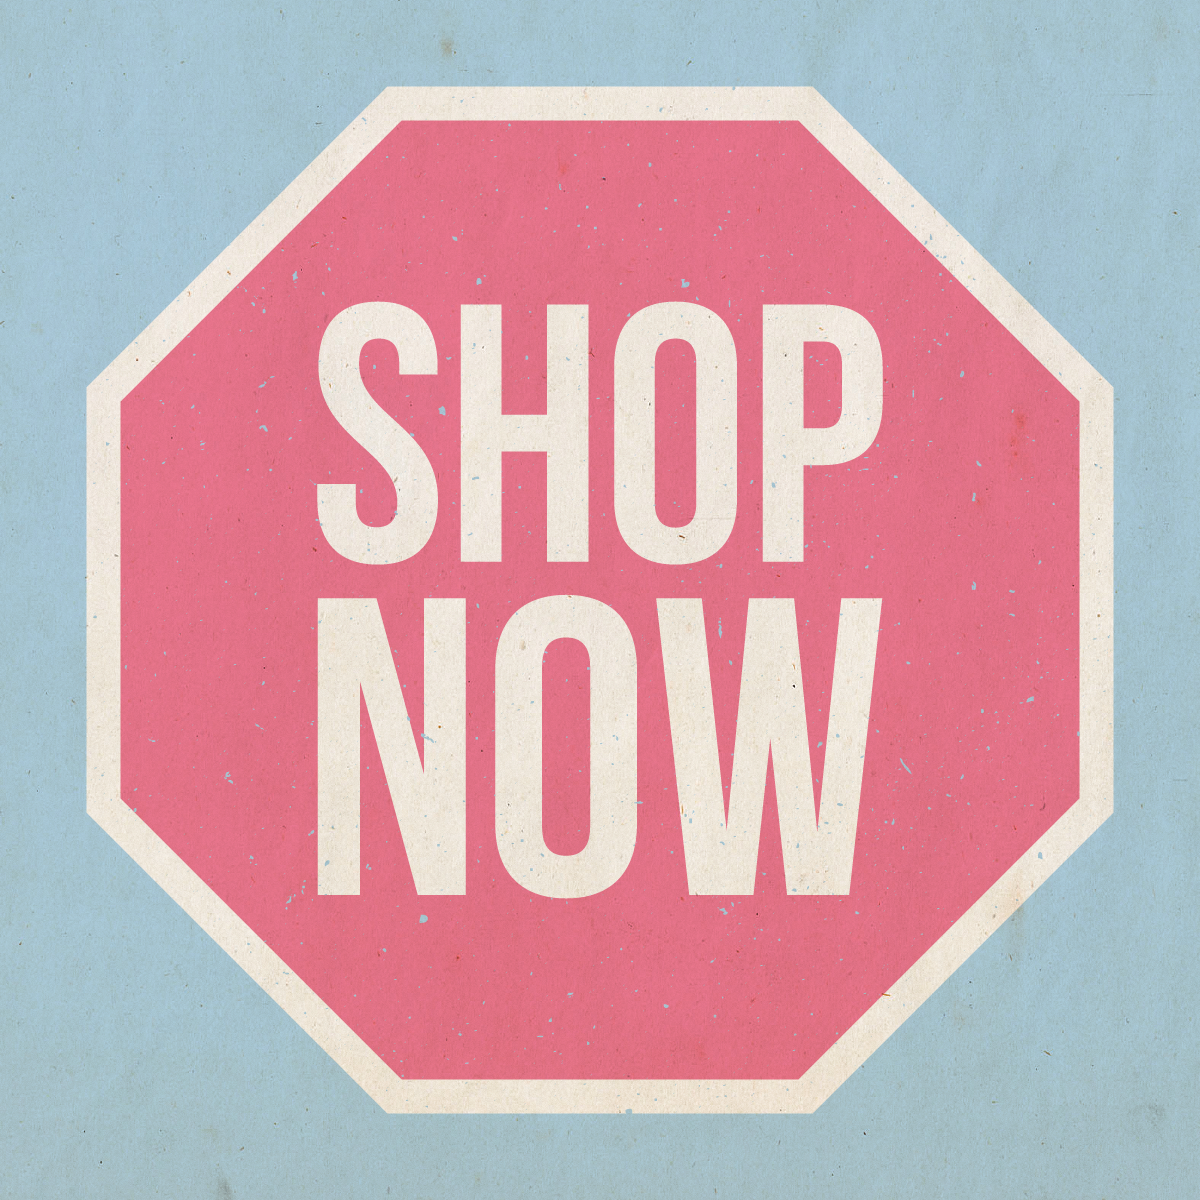 Walker Layne Boutique Elizabethtown Ky Boutique Window Shopping Quotes Online Shopping Quotes Small Business Quotes